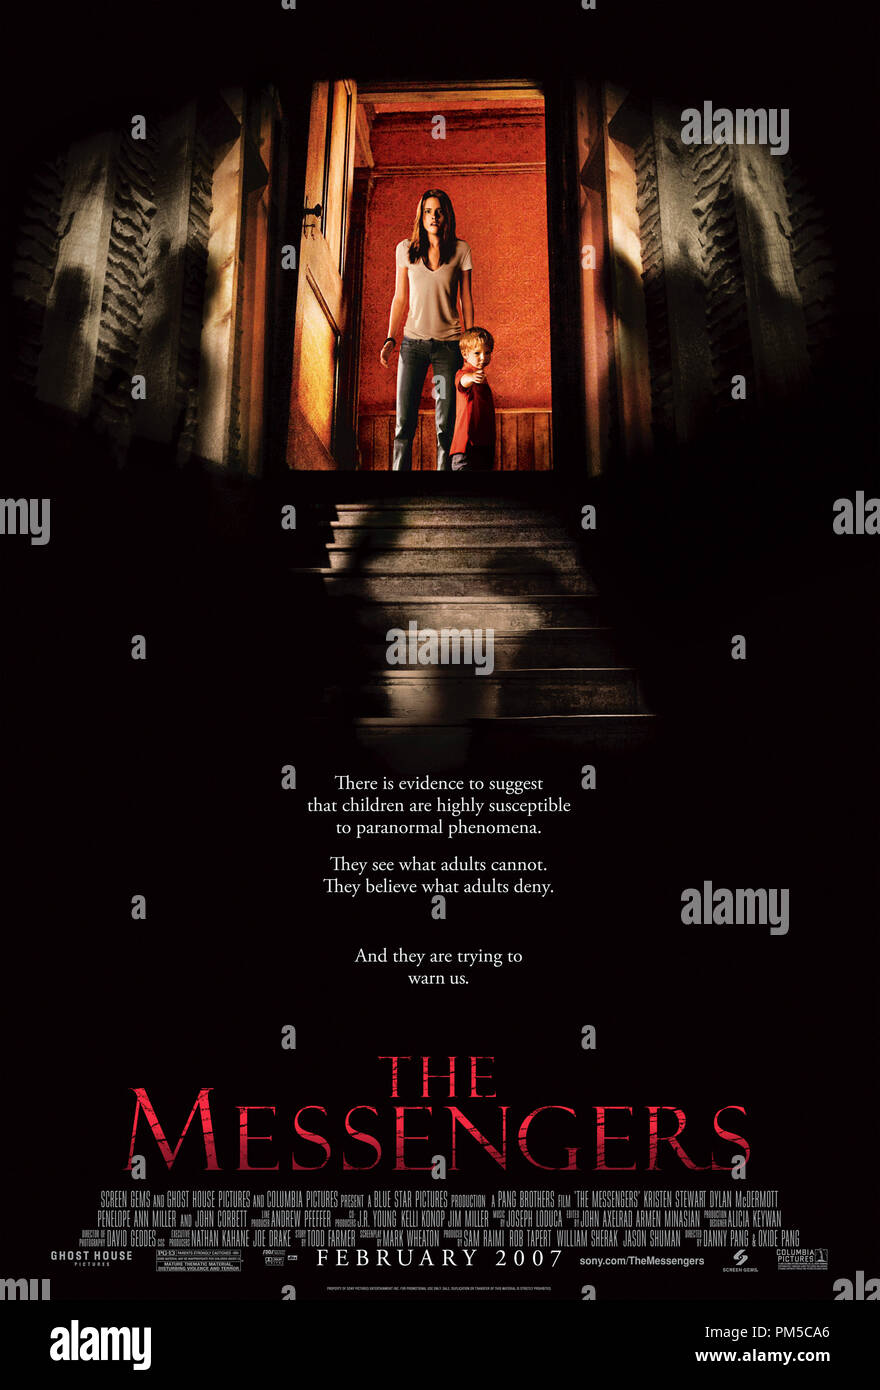 'The Messengers' Poster © 2007 Screen Gems - Stock Image